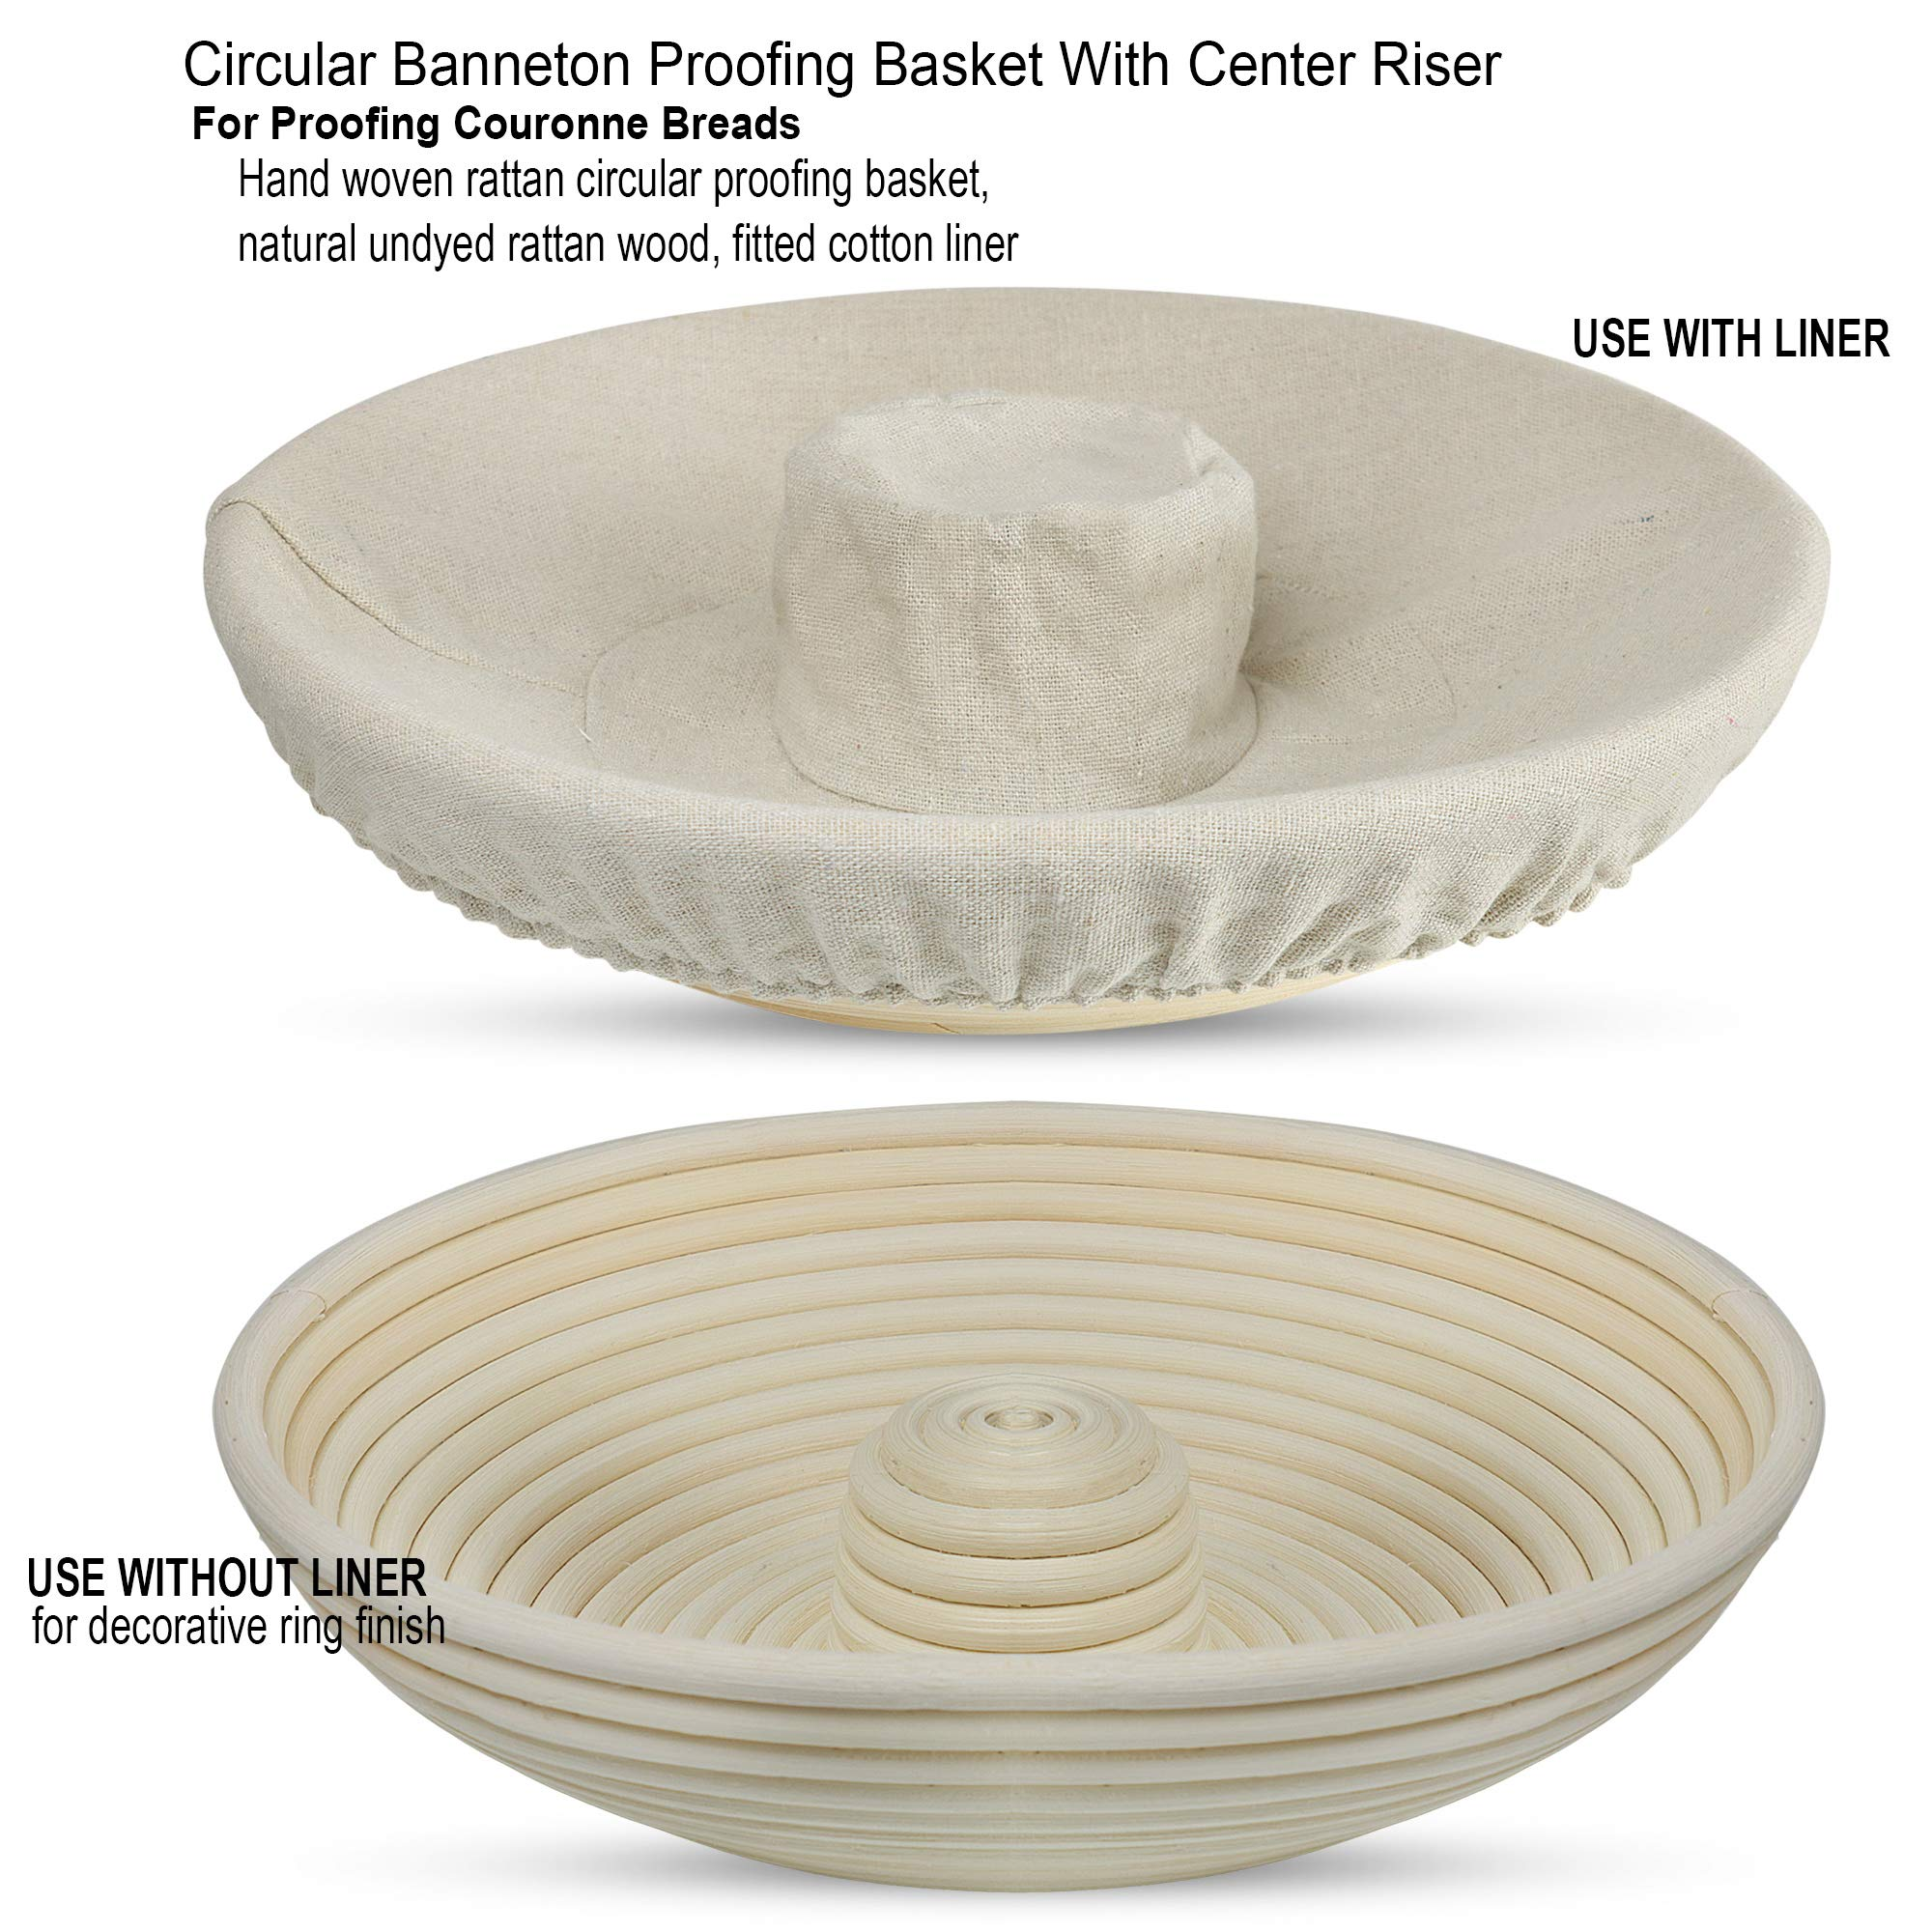 Circular Brotfom Proofing Basket Set - Hand Woven Ring Round Rattan Couronne Banneton Proofing Bread Rising Basket with Center Riser, 11.5 Inch, Fitted Cotton Liner, and Bread Bowl Scraper by Bread Experience (Image #3)